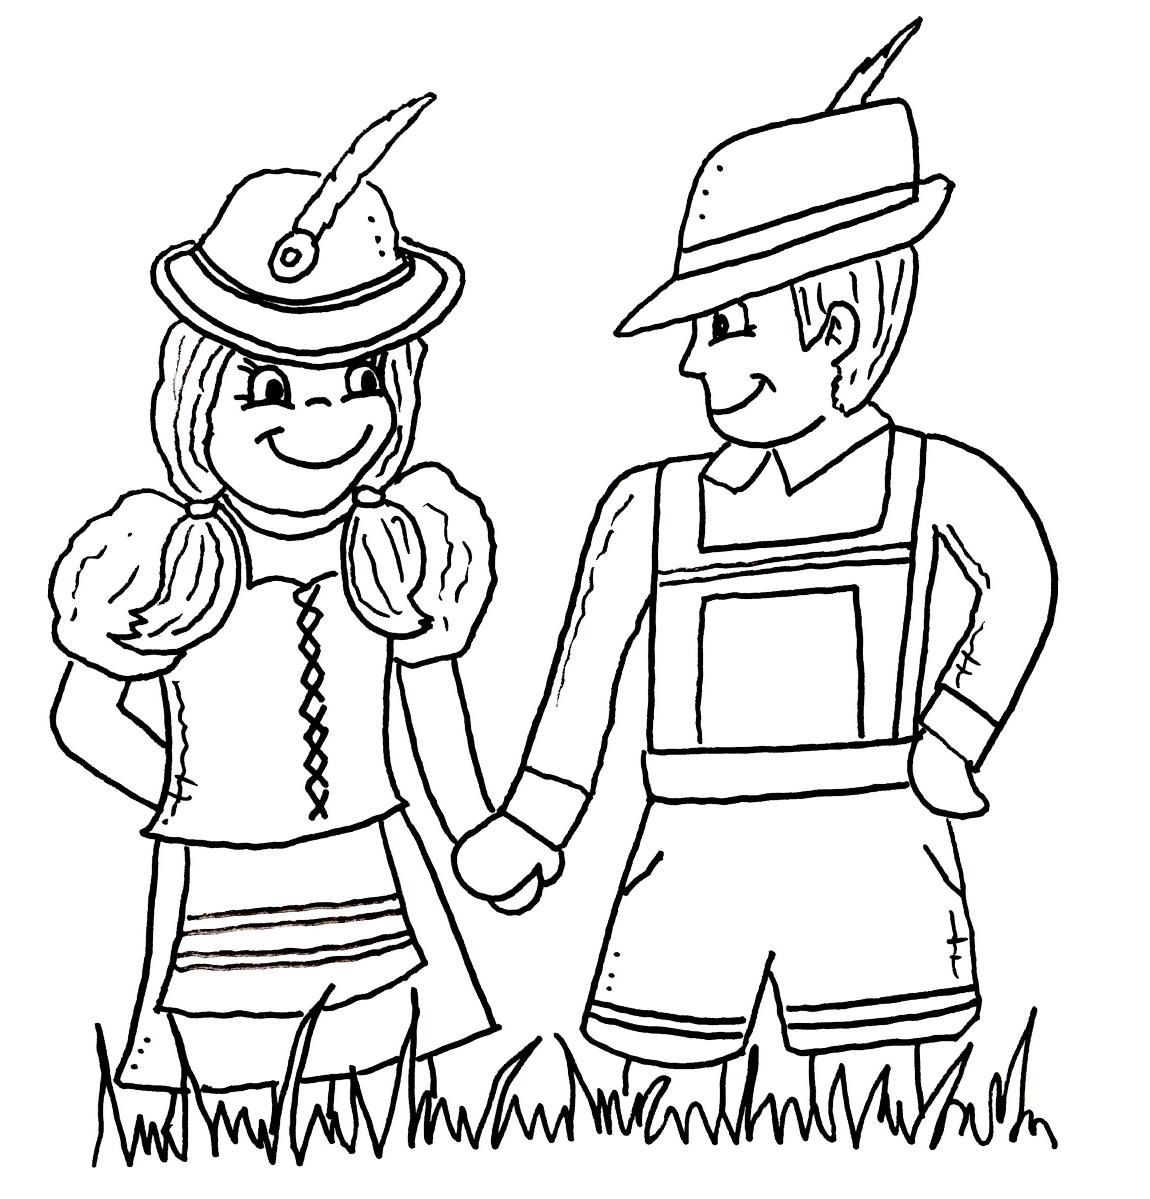 Austrian Coloring Page Puppy Coloring Pages Coloring Pages Flag Coloring Pages